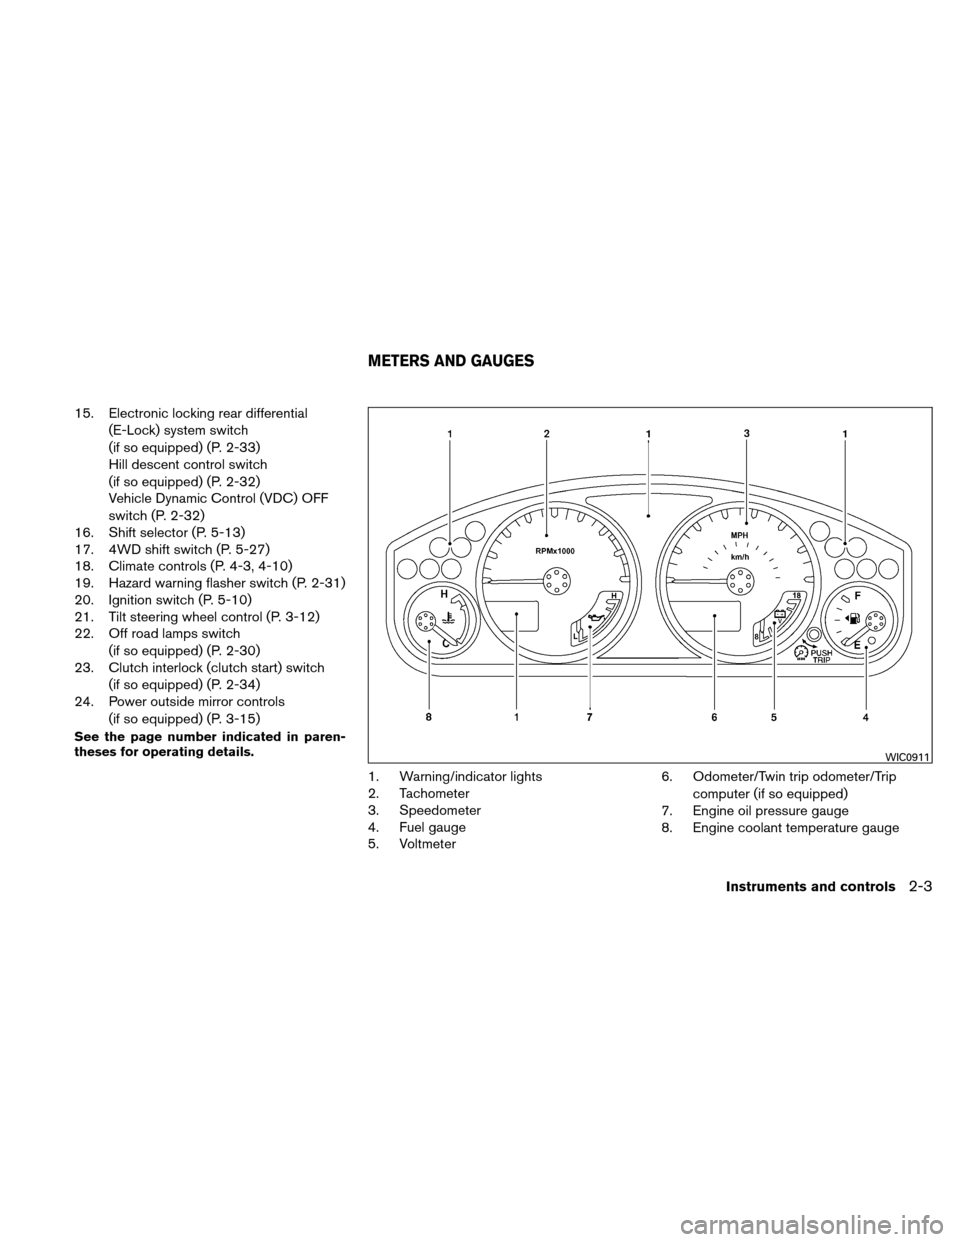 NISSAN XTERRA 2011 N50 / 2.G Owners Manual, Page 80